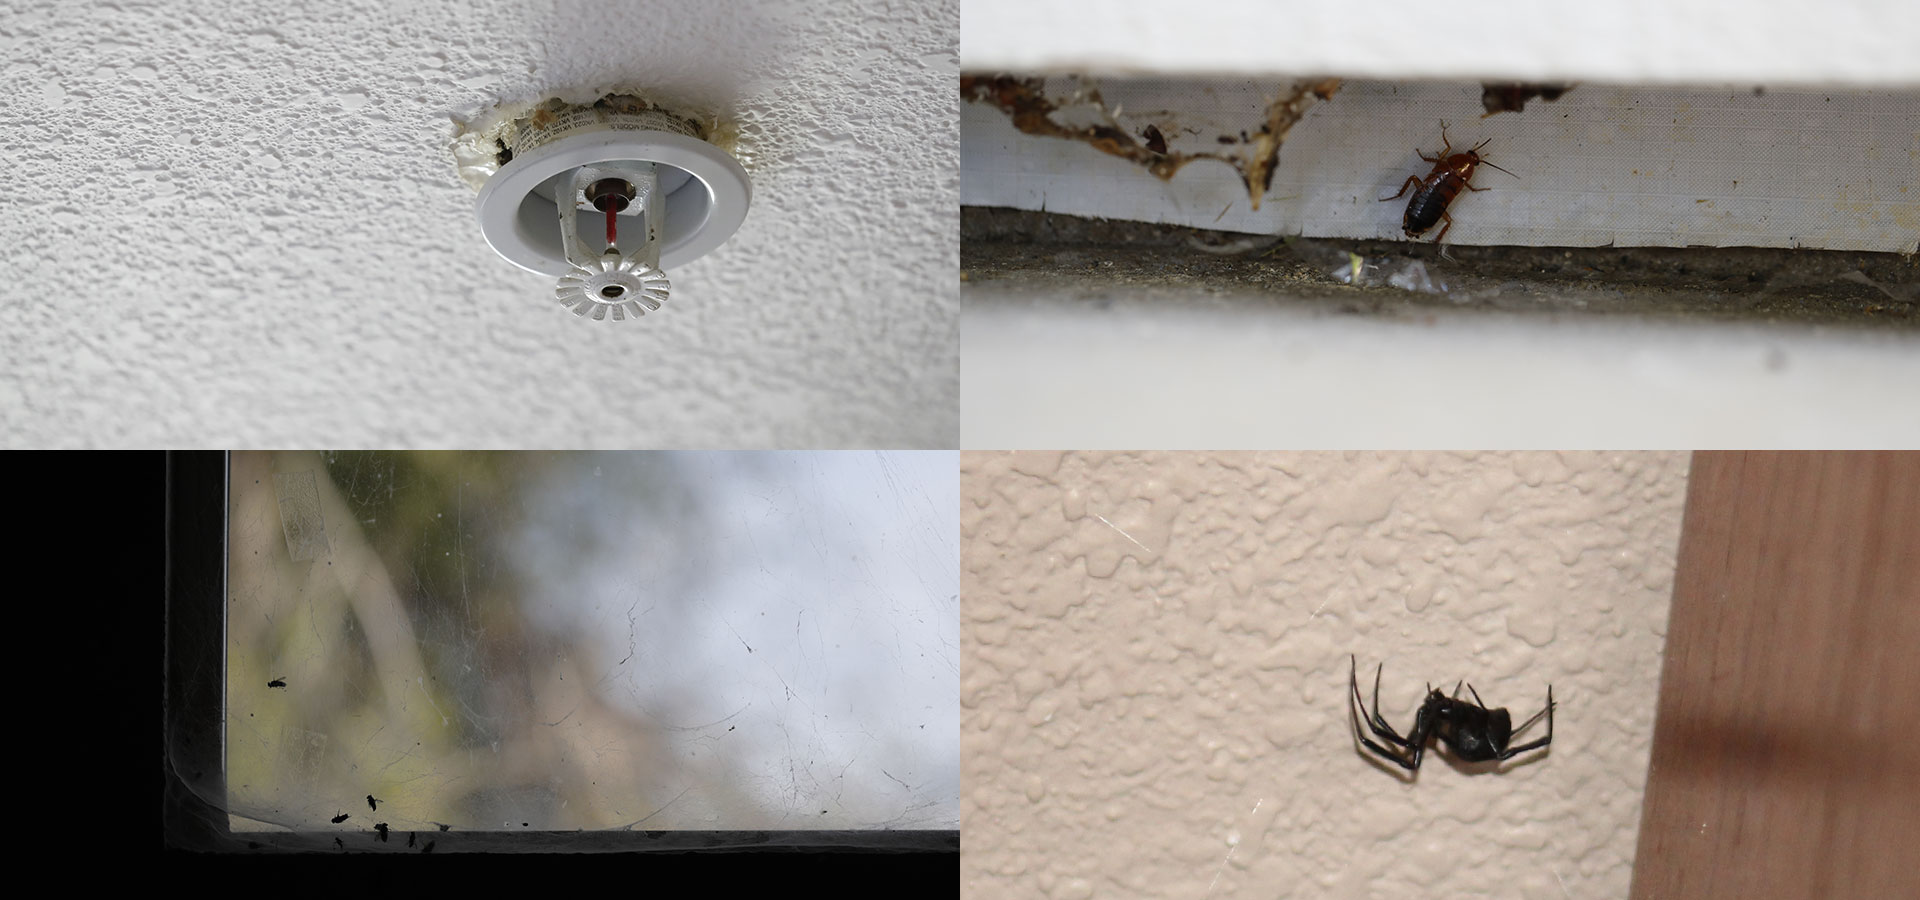 Spiders, sewage, fees – the other side of renting from Wall